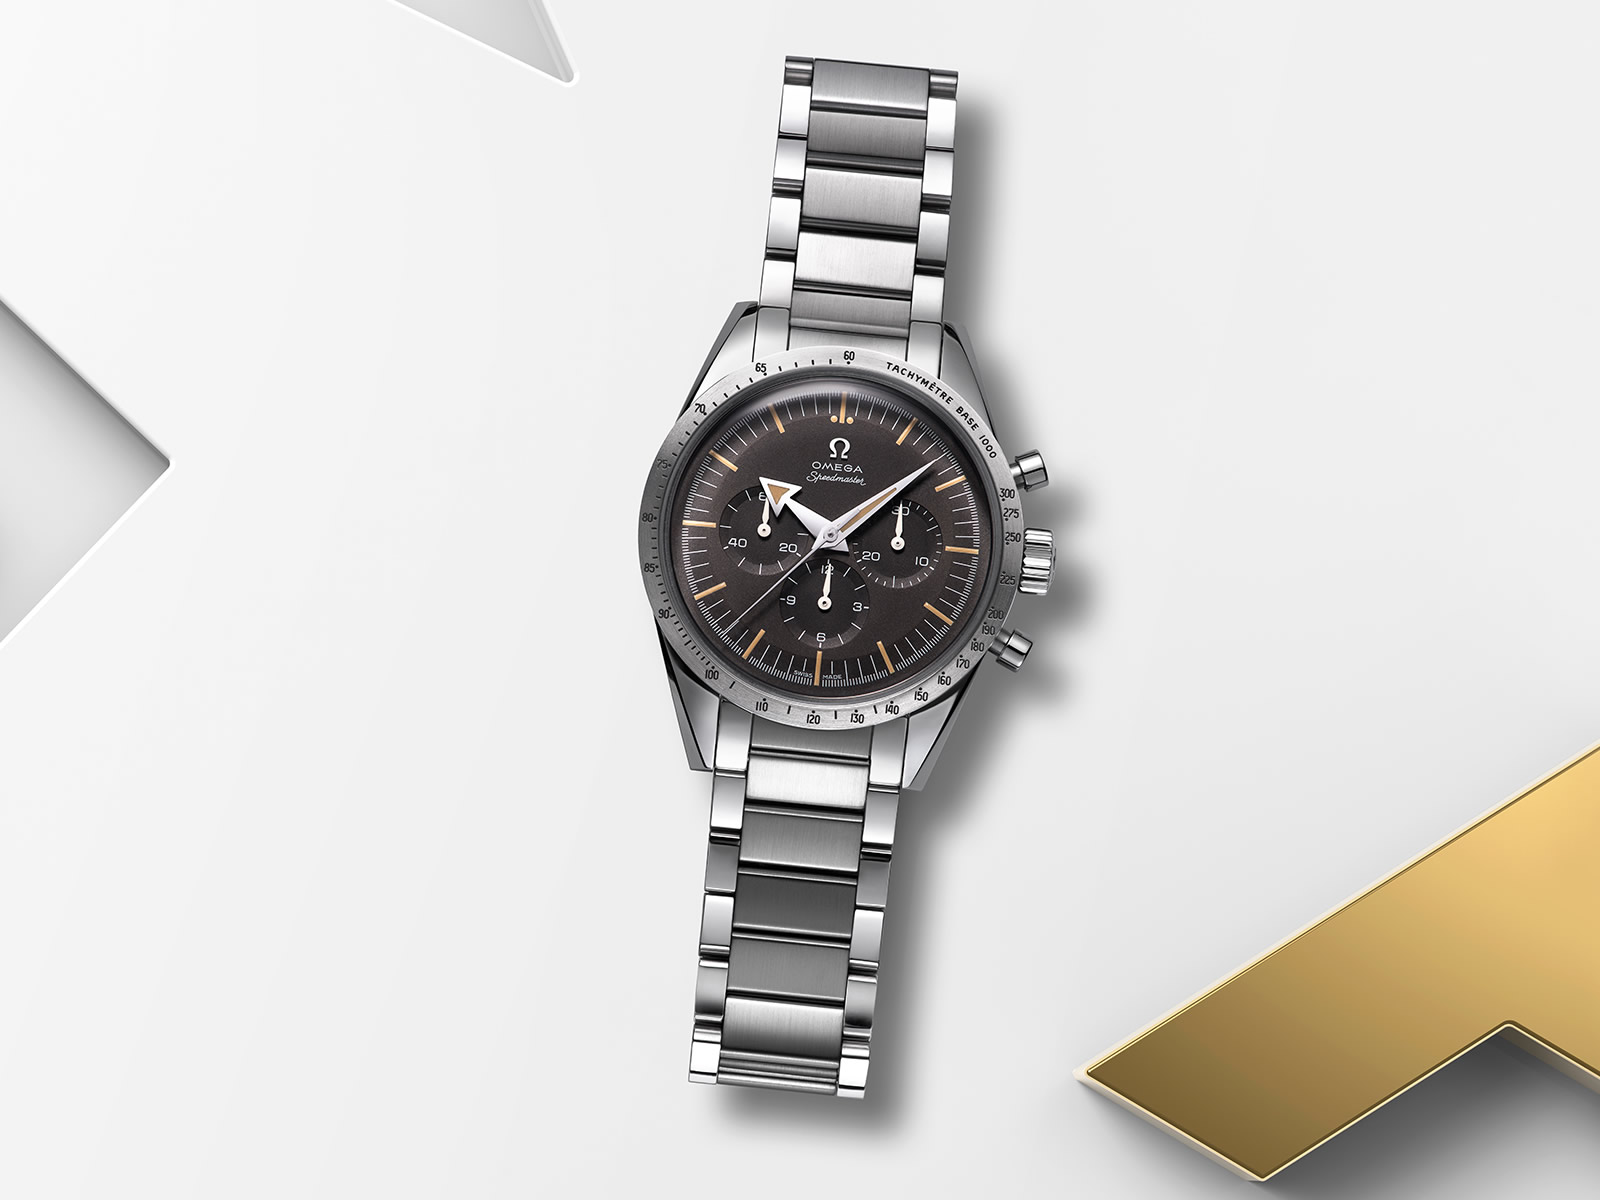 omega-speedmaster-60th-anniversary-limited-edition-1-.jpg